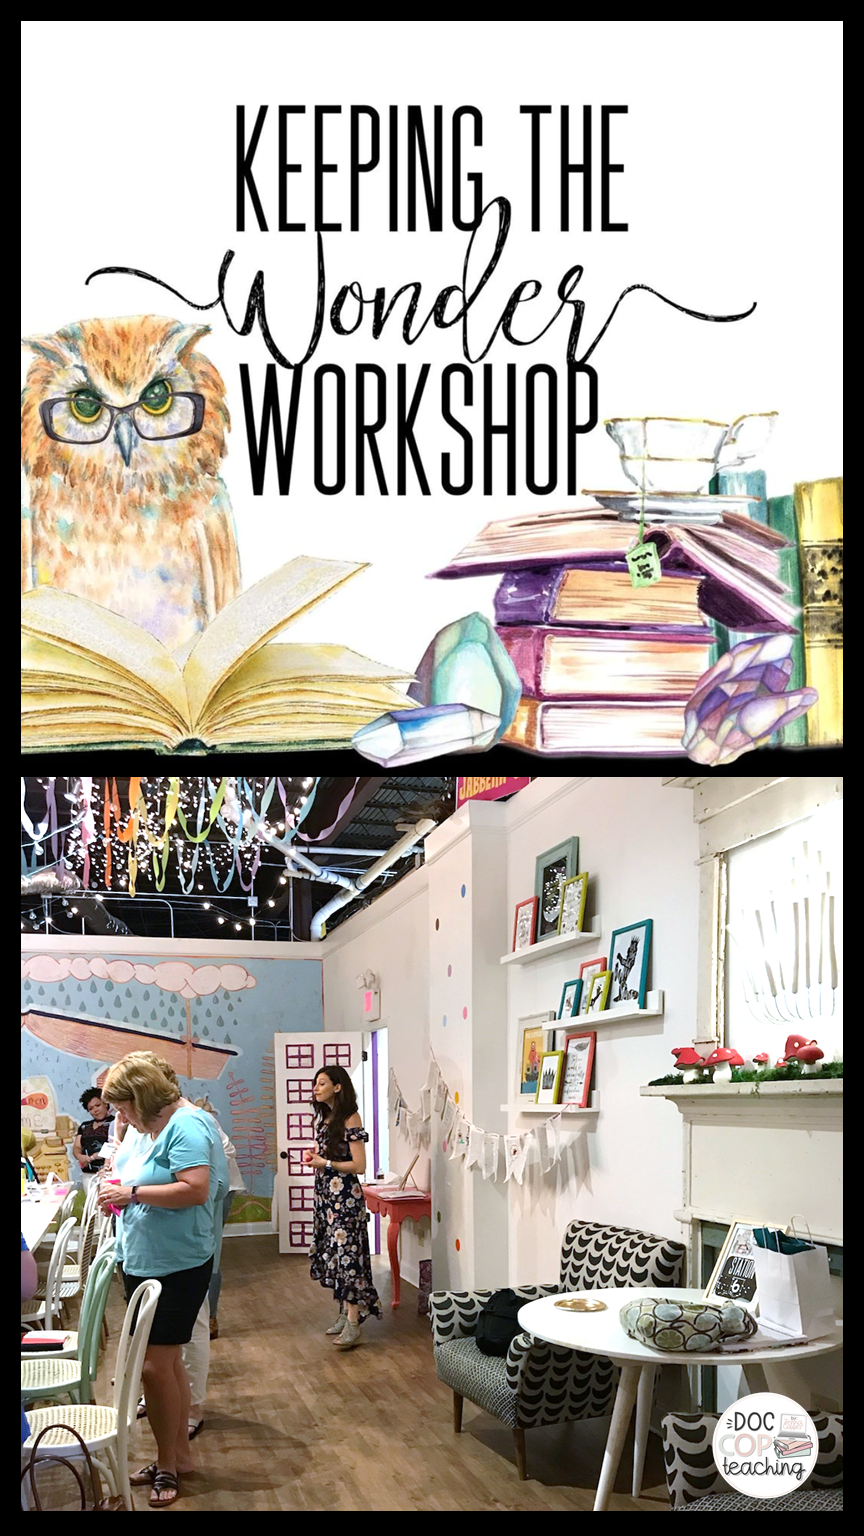 Keeping the Wonder Workshop at the Story Shop